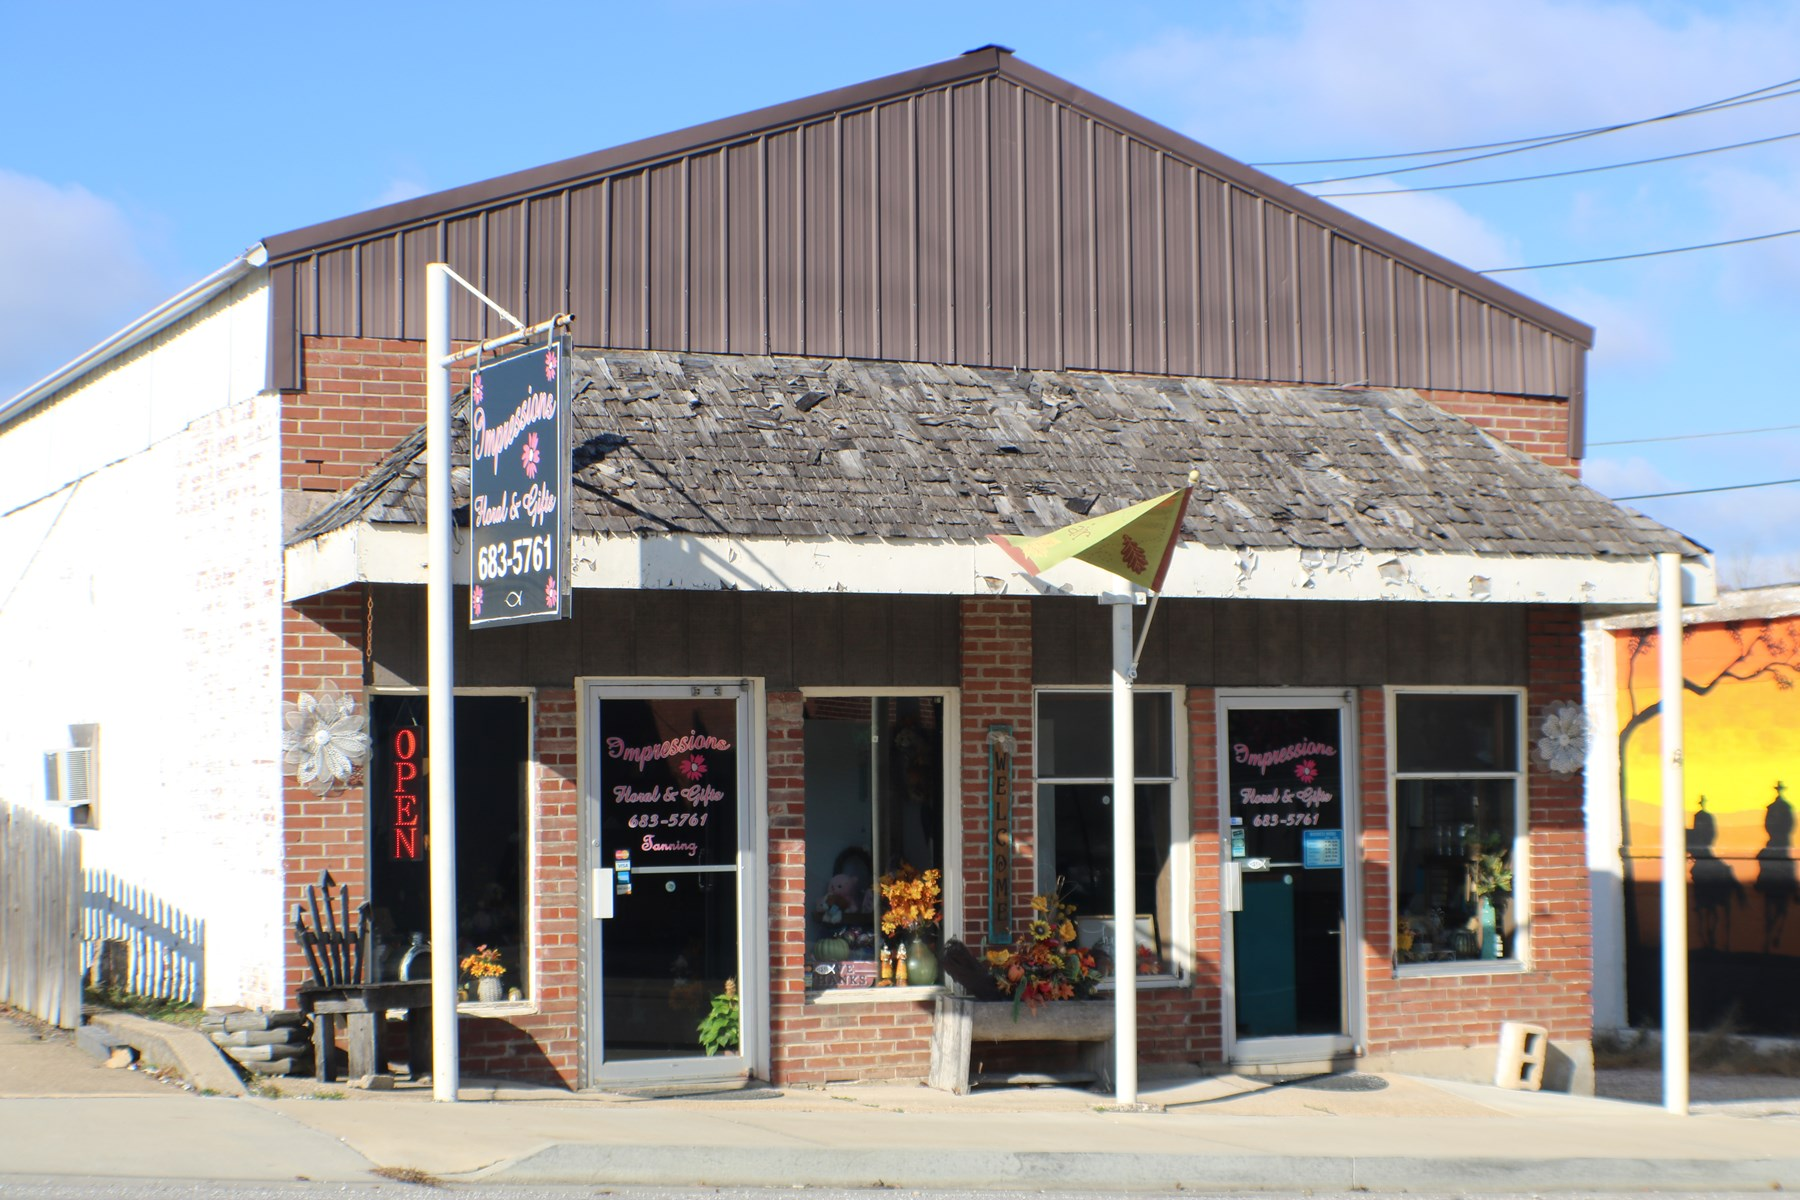 Business for sale in Ava, Mo.